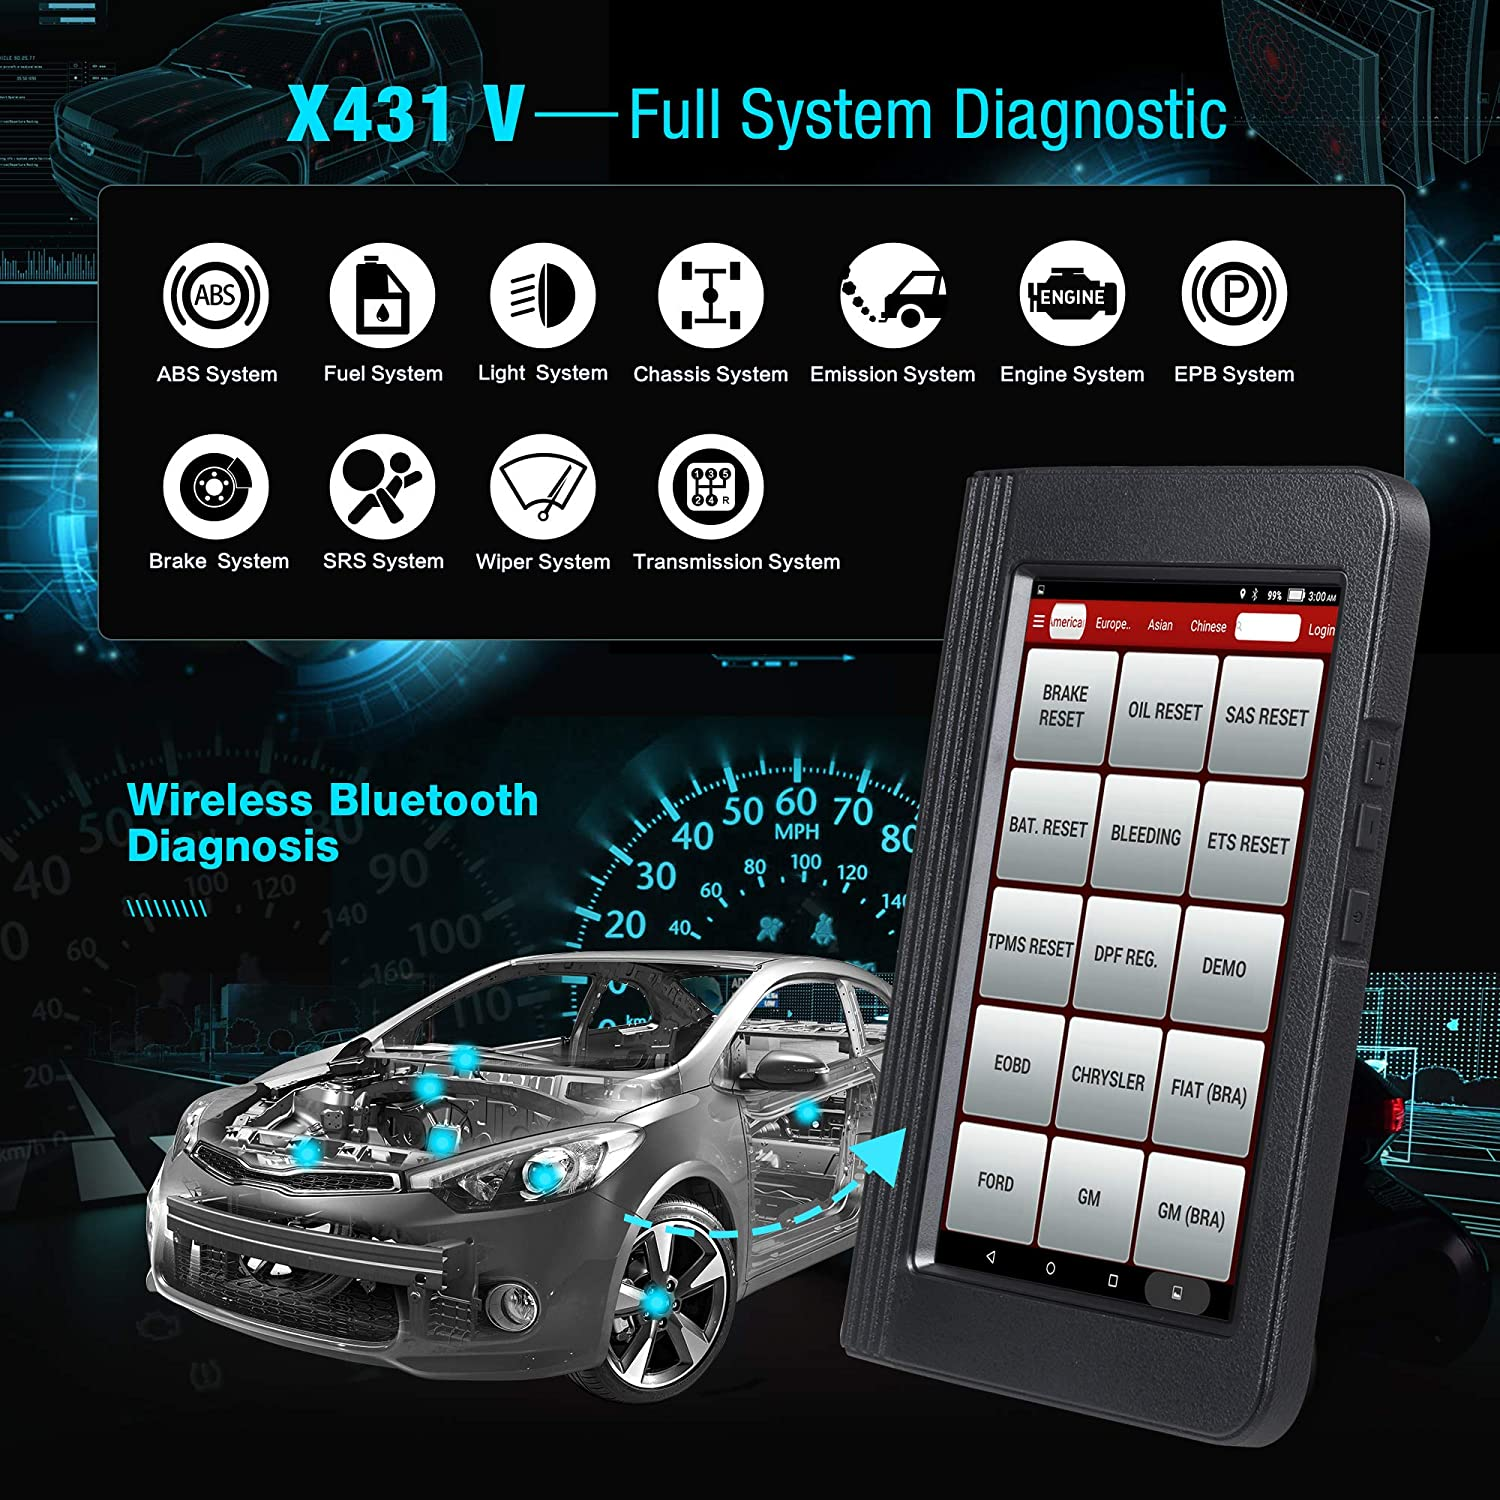 LAUNCH X431 V Pro (Same Function with X431 V+) Bidirectional Scanner Full System Bidirectional Control Scan Tool OBD Diagnostic with Relearn Reset ...